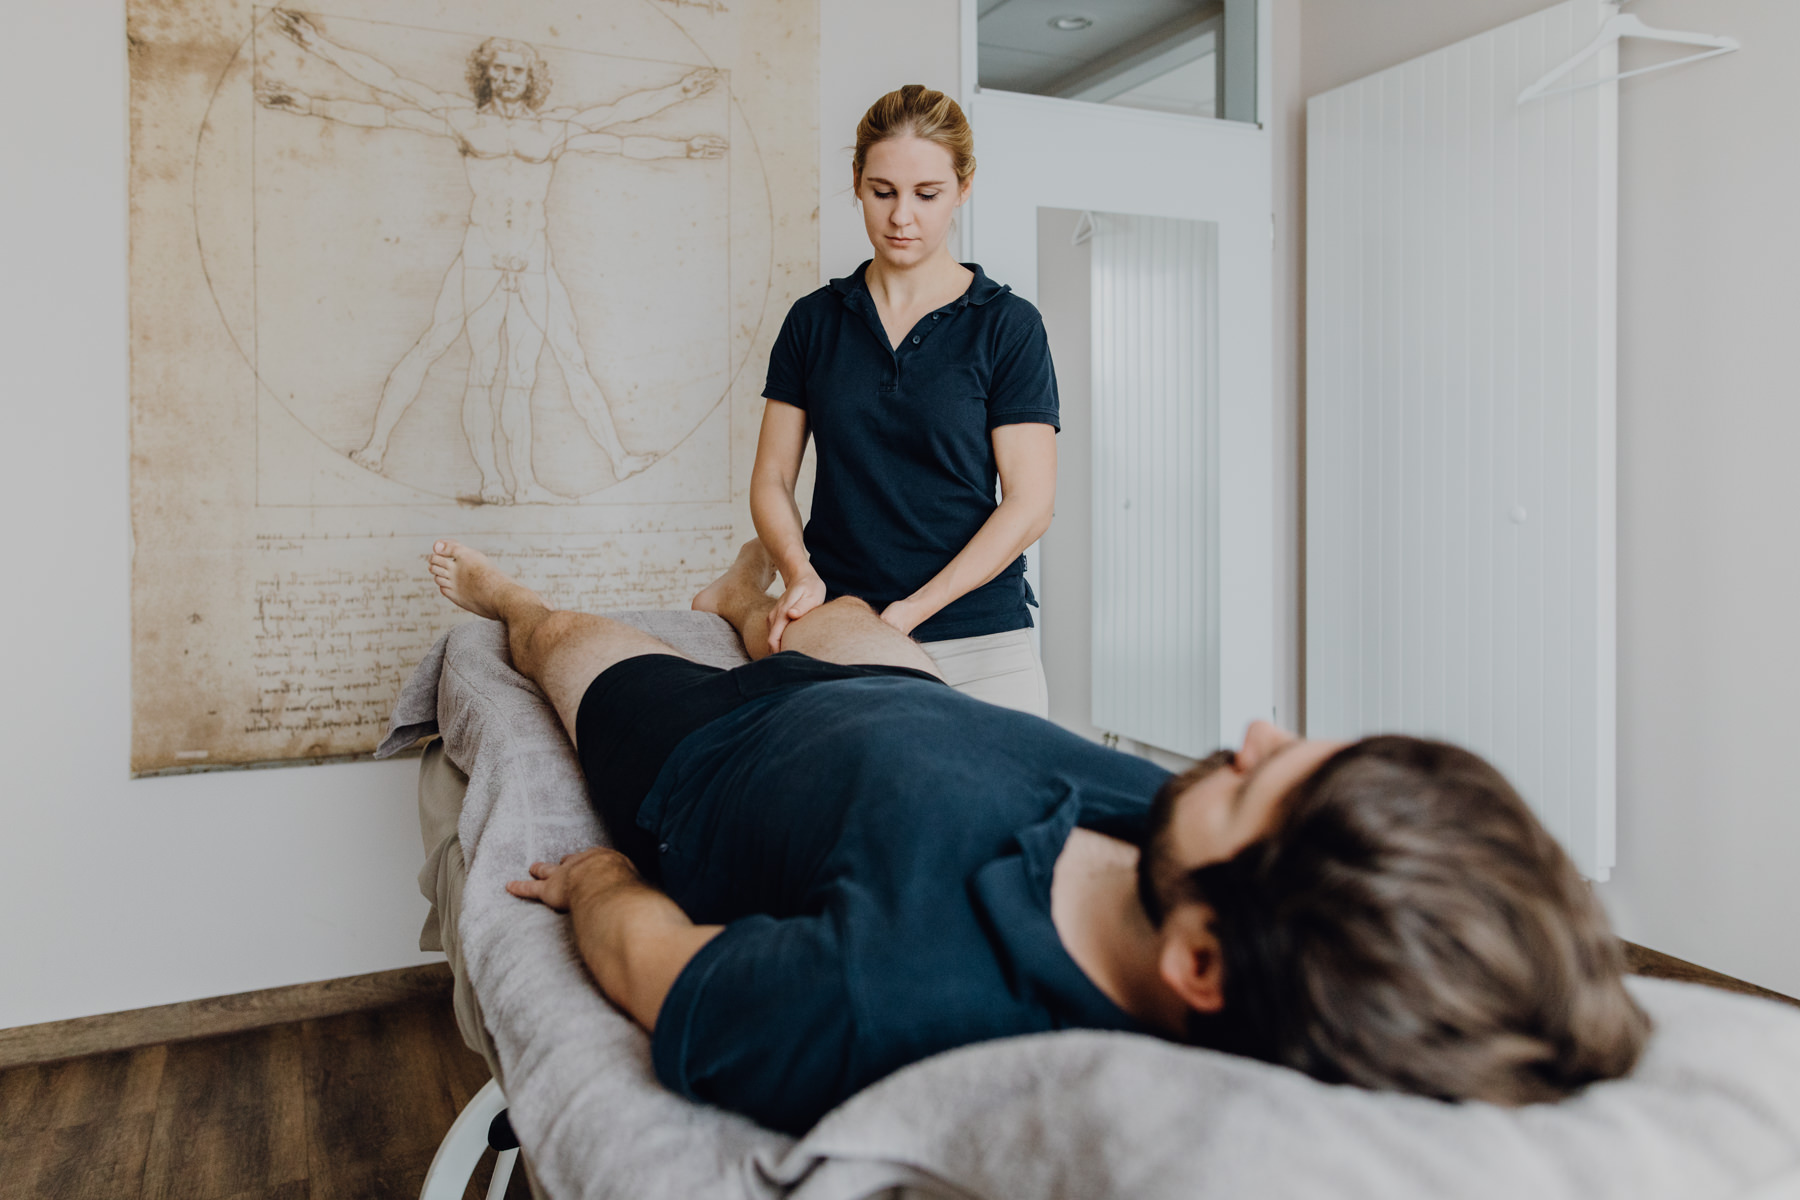 Physiotherapeut behandelt Patient mit Manueller Lymphdrainage